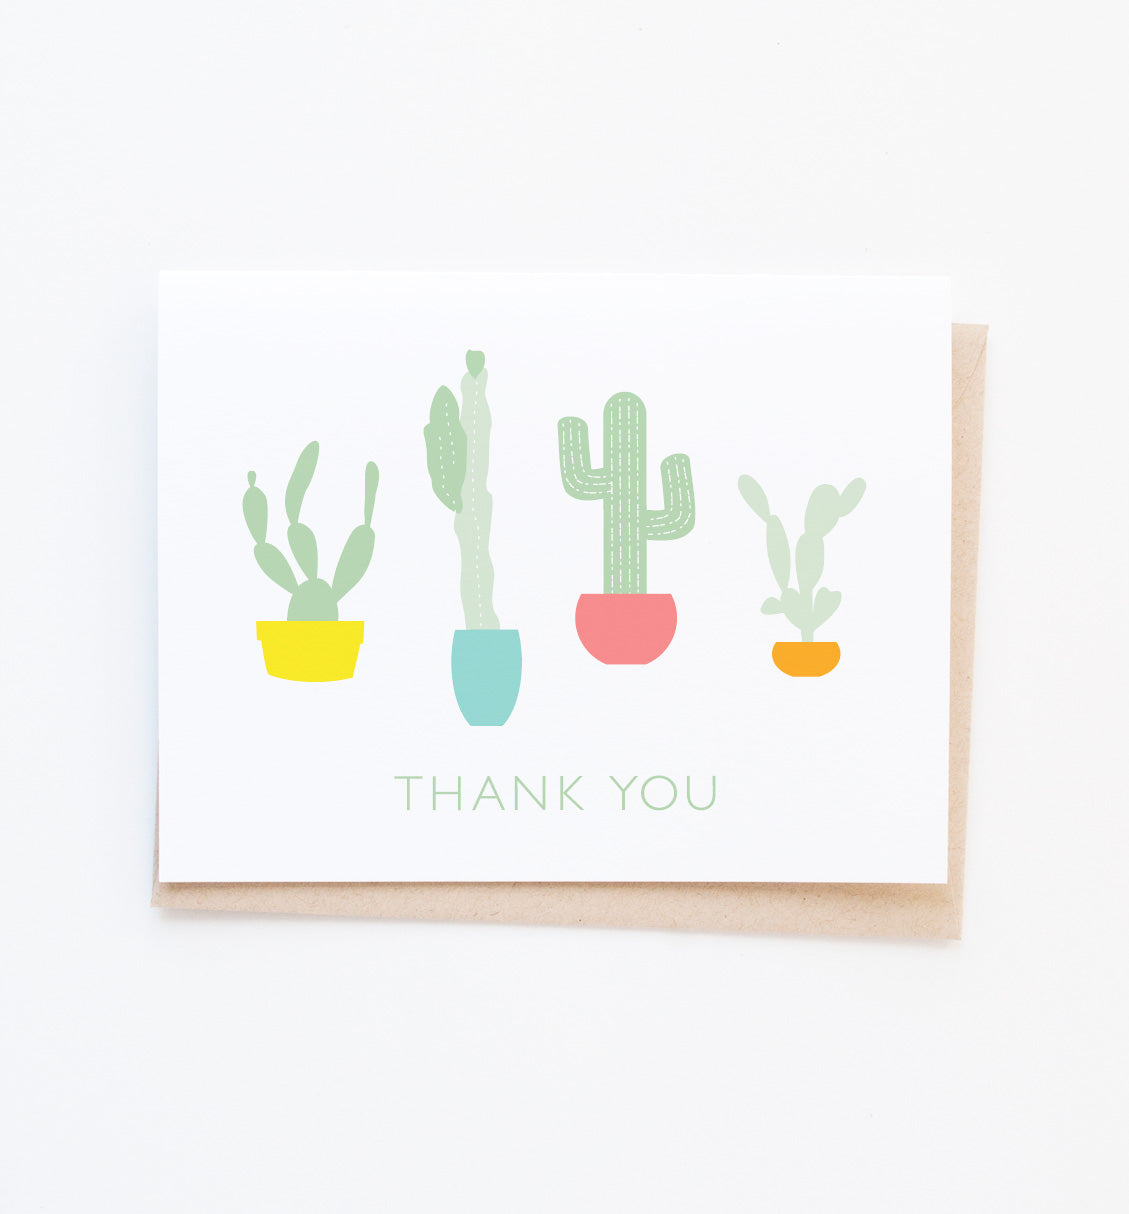 Cacti thank you